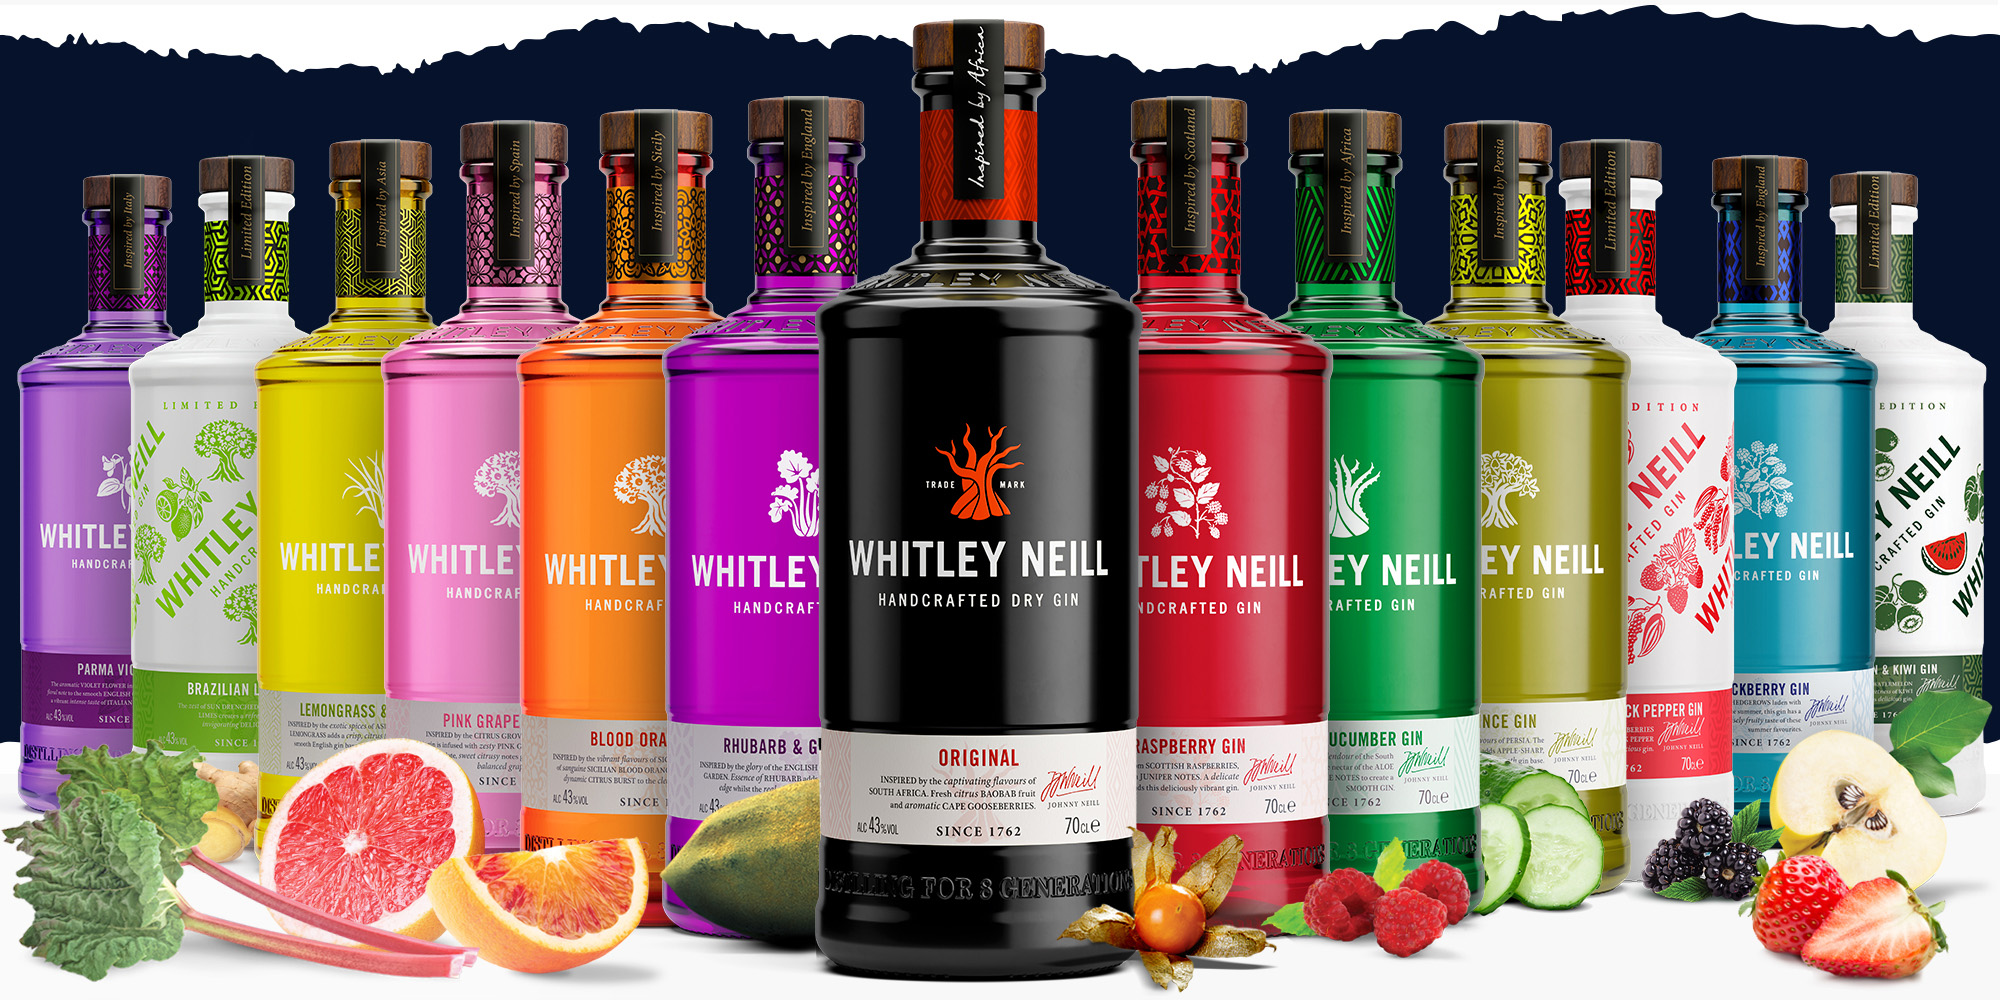 Whitley Neill Range of Gins with flavours